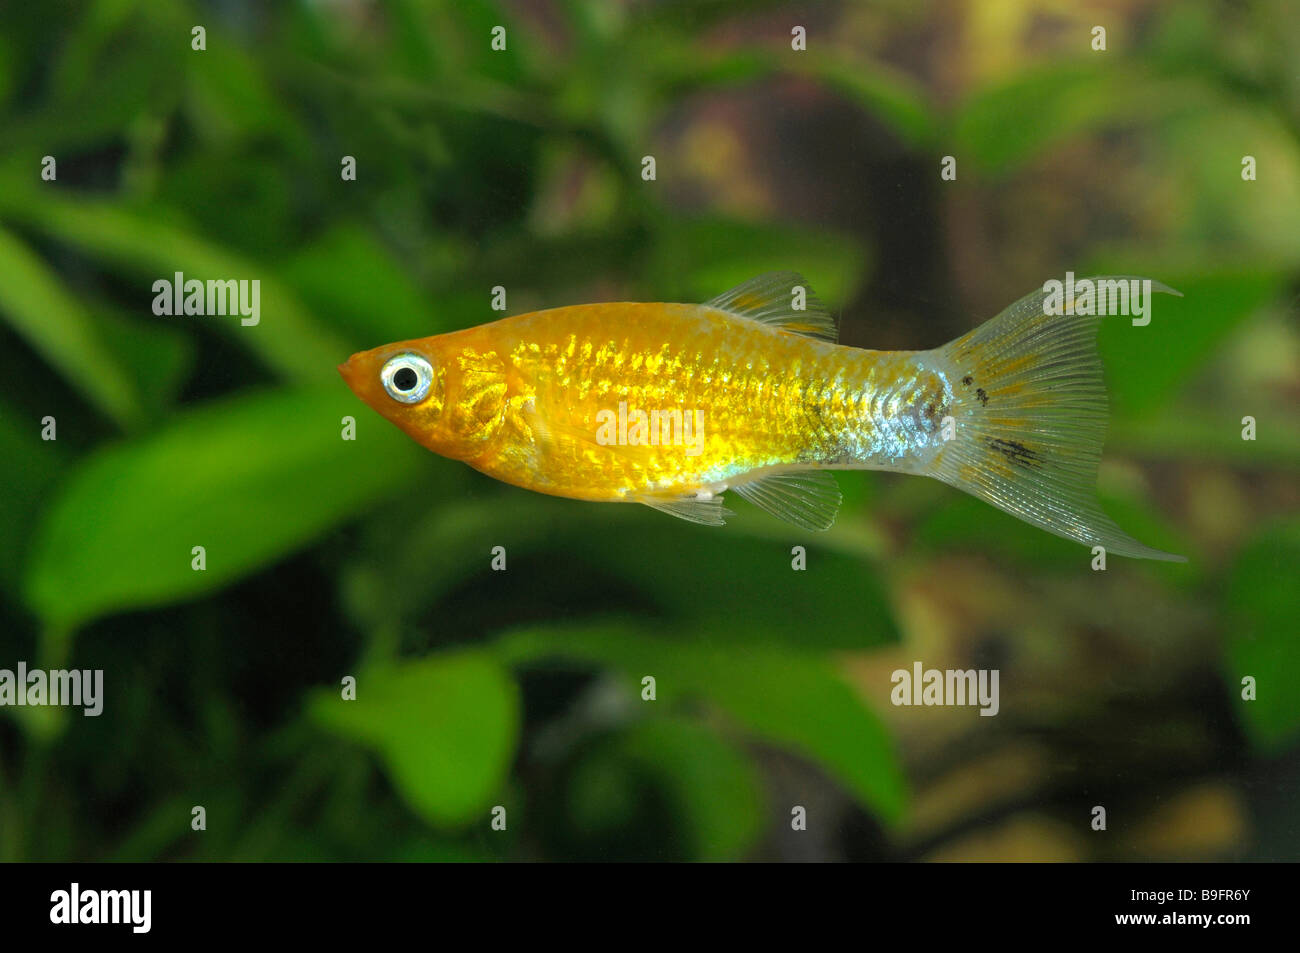 gold molly poecilia sphenops in an aquarium stock photo 23089779